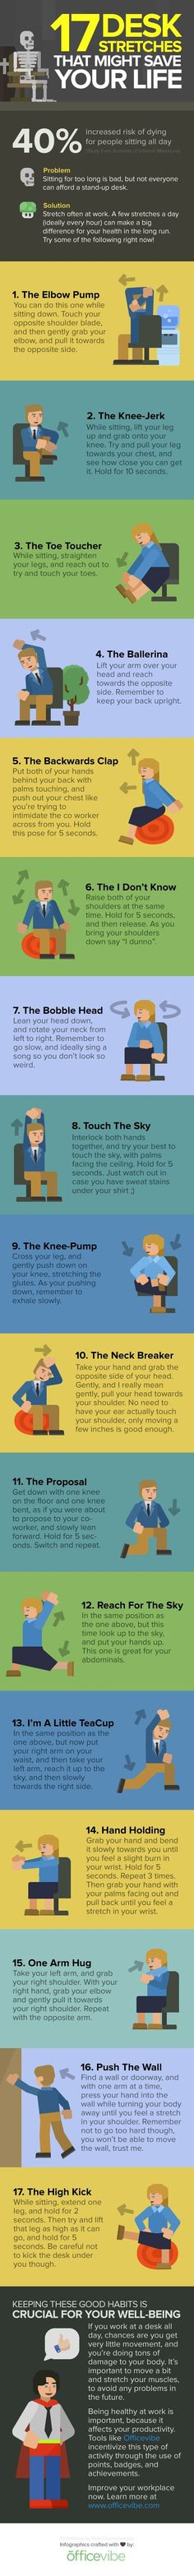 Try these office stretches to relieve tension, get your blood flowing, and recharge your energy throughout the work day